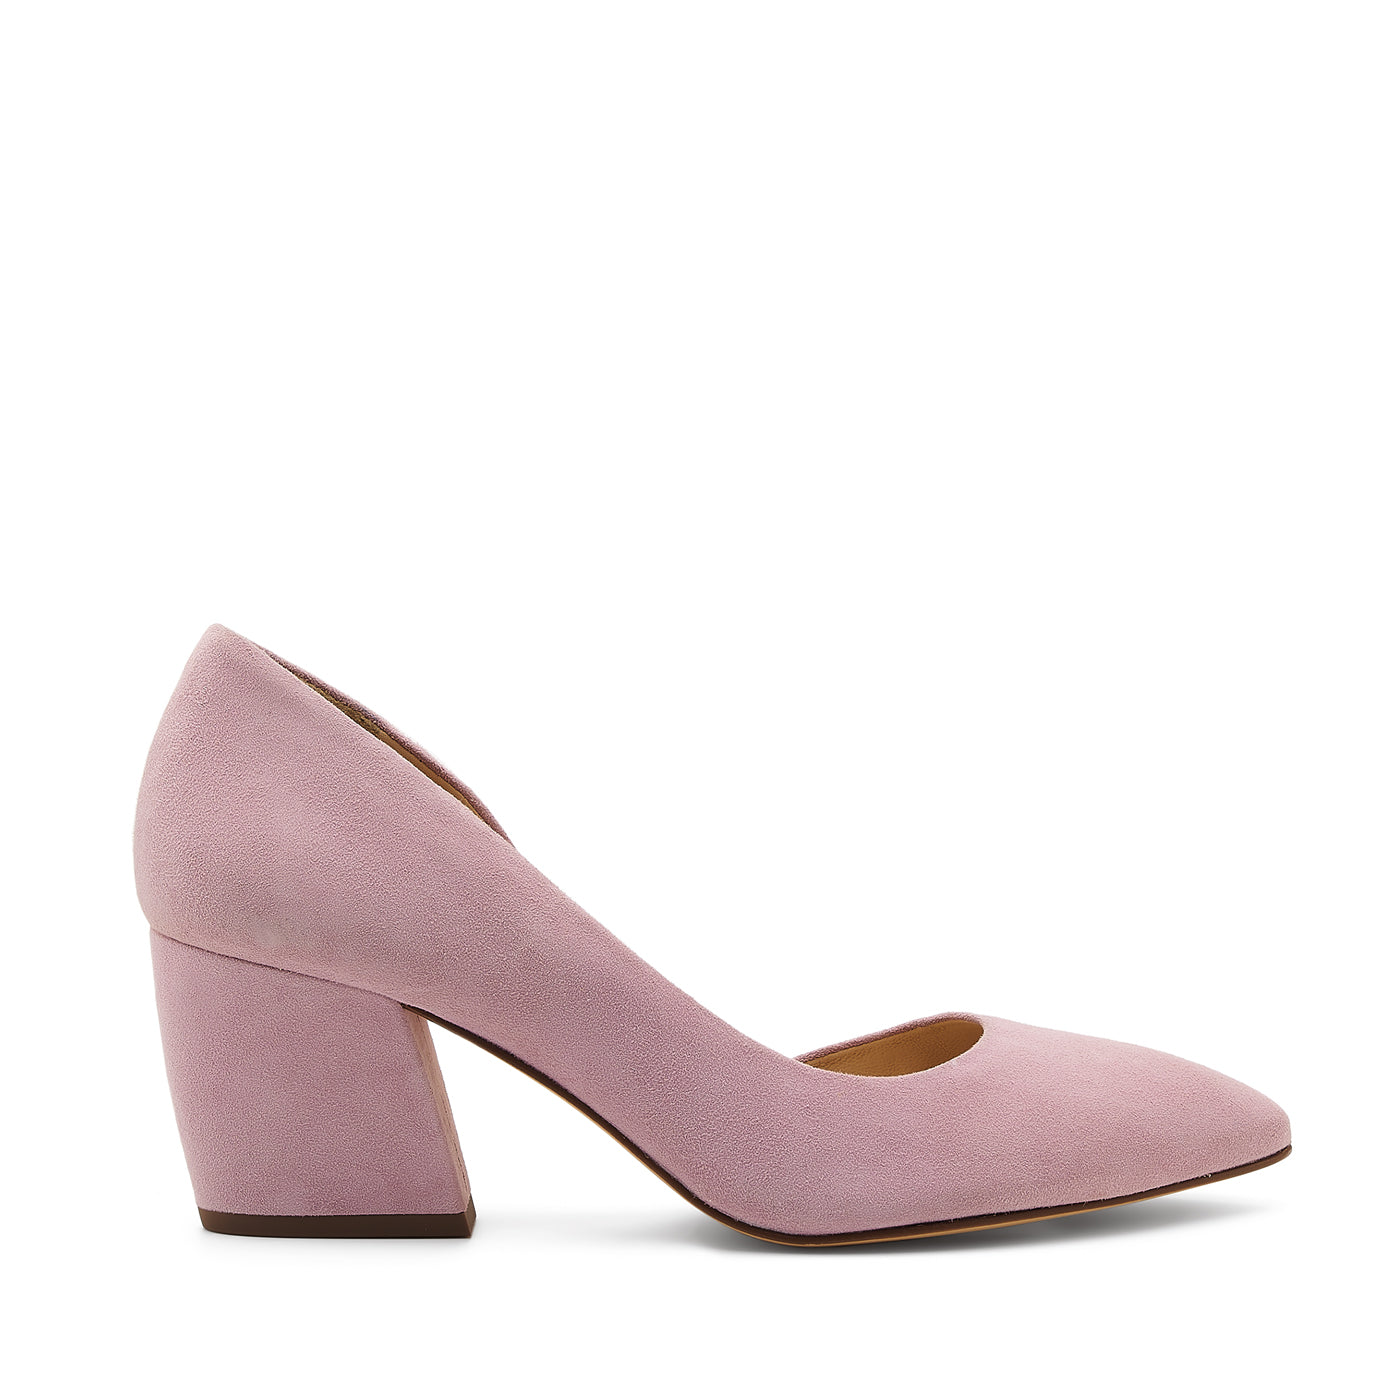 botkier sena d'orsay low heel almond toe pump in lavender purple